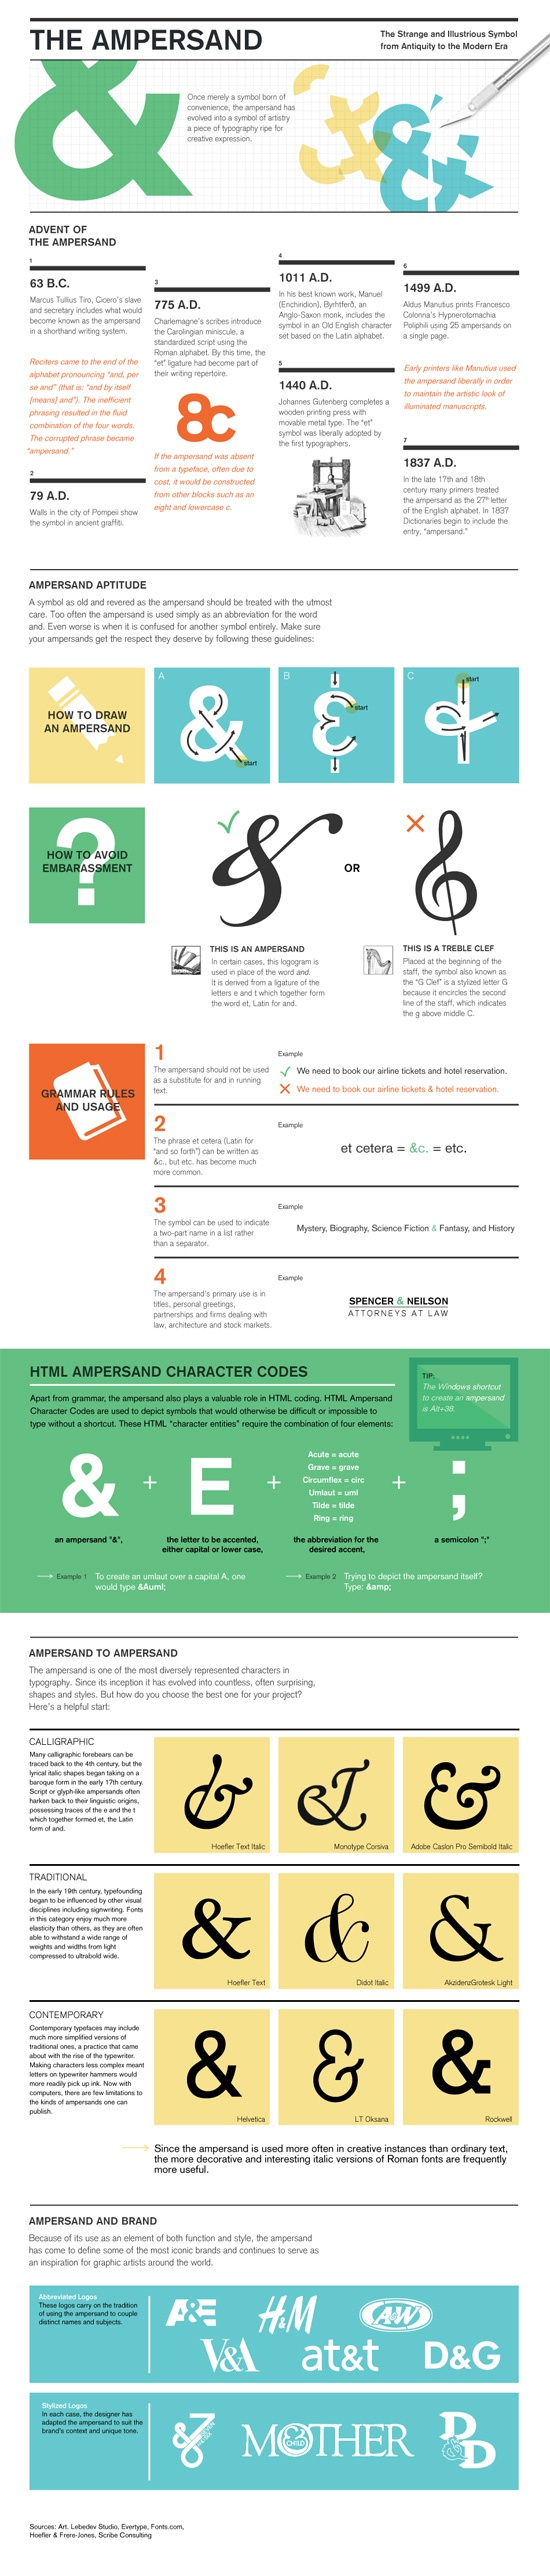 Ecoschools gt home gt resources and guides gt charts and posters - Ampersand